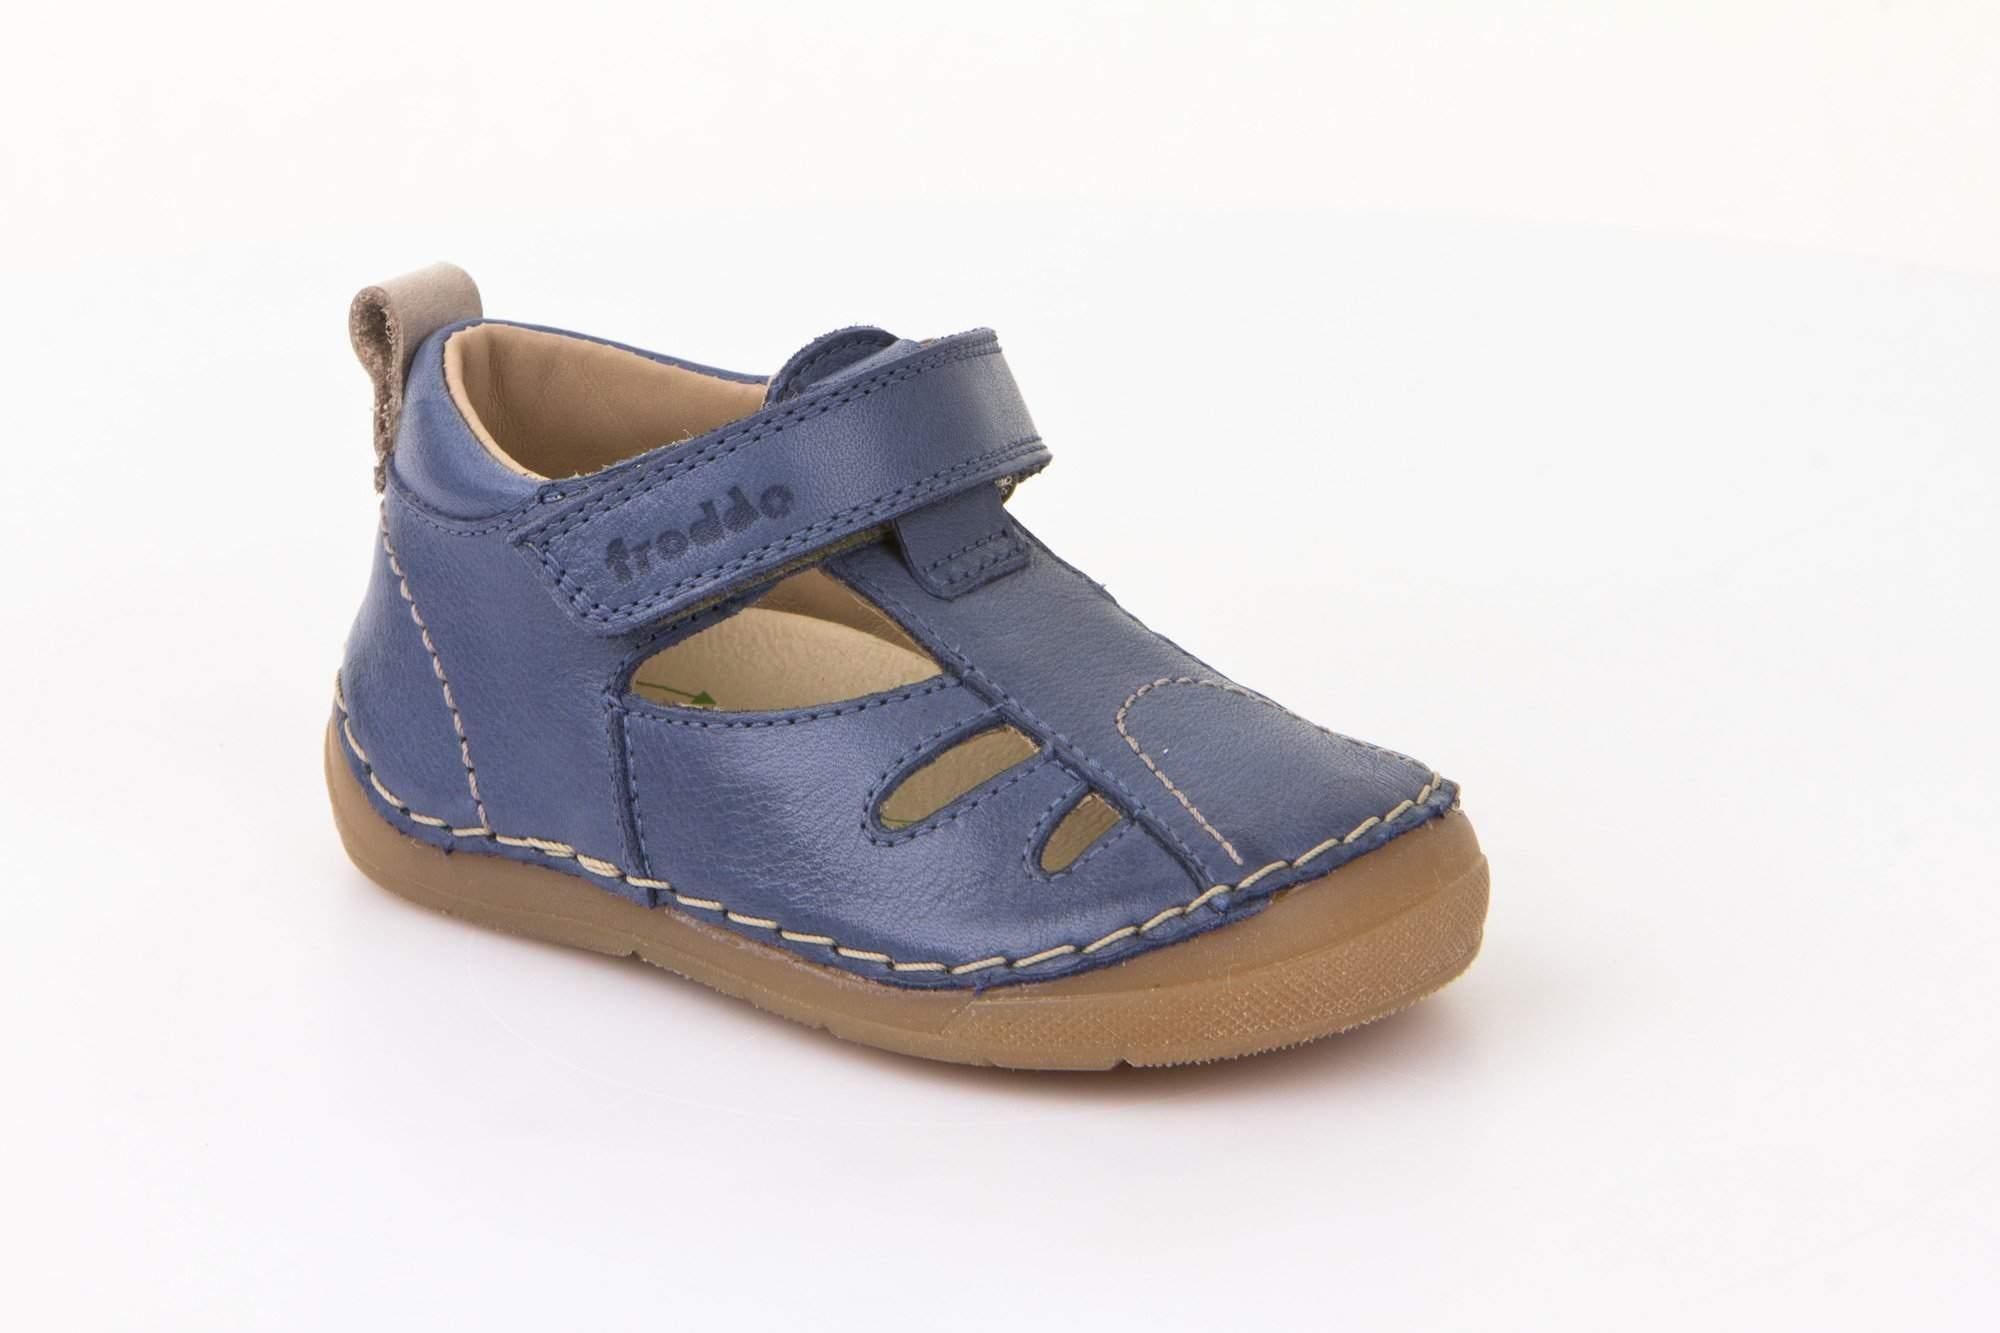 Froddo/G2150075-1/Denim/Boys  Leather Sandals /Toddler - ShoeKid.ca